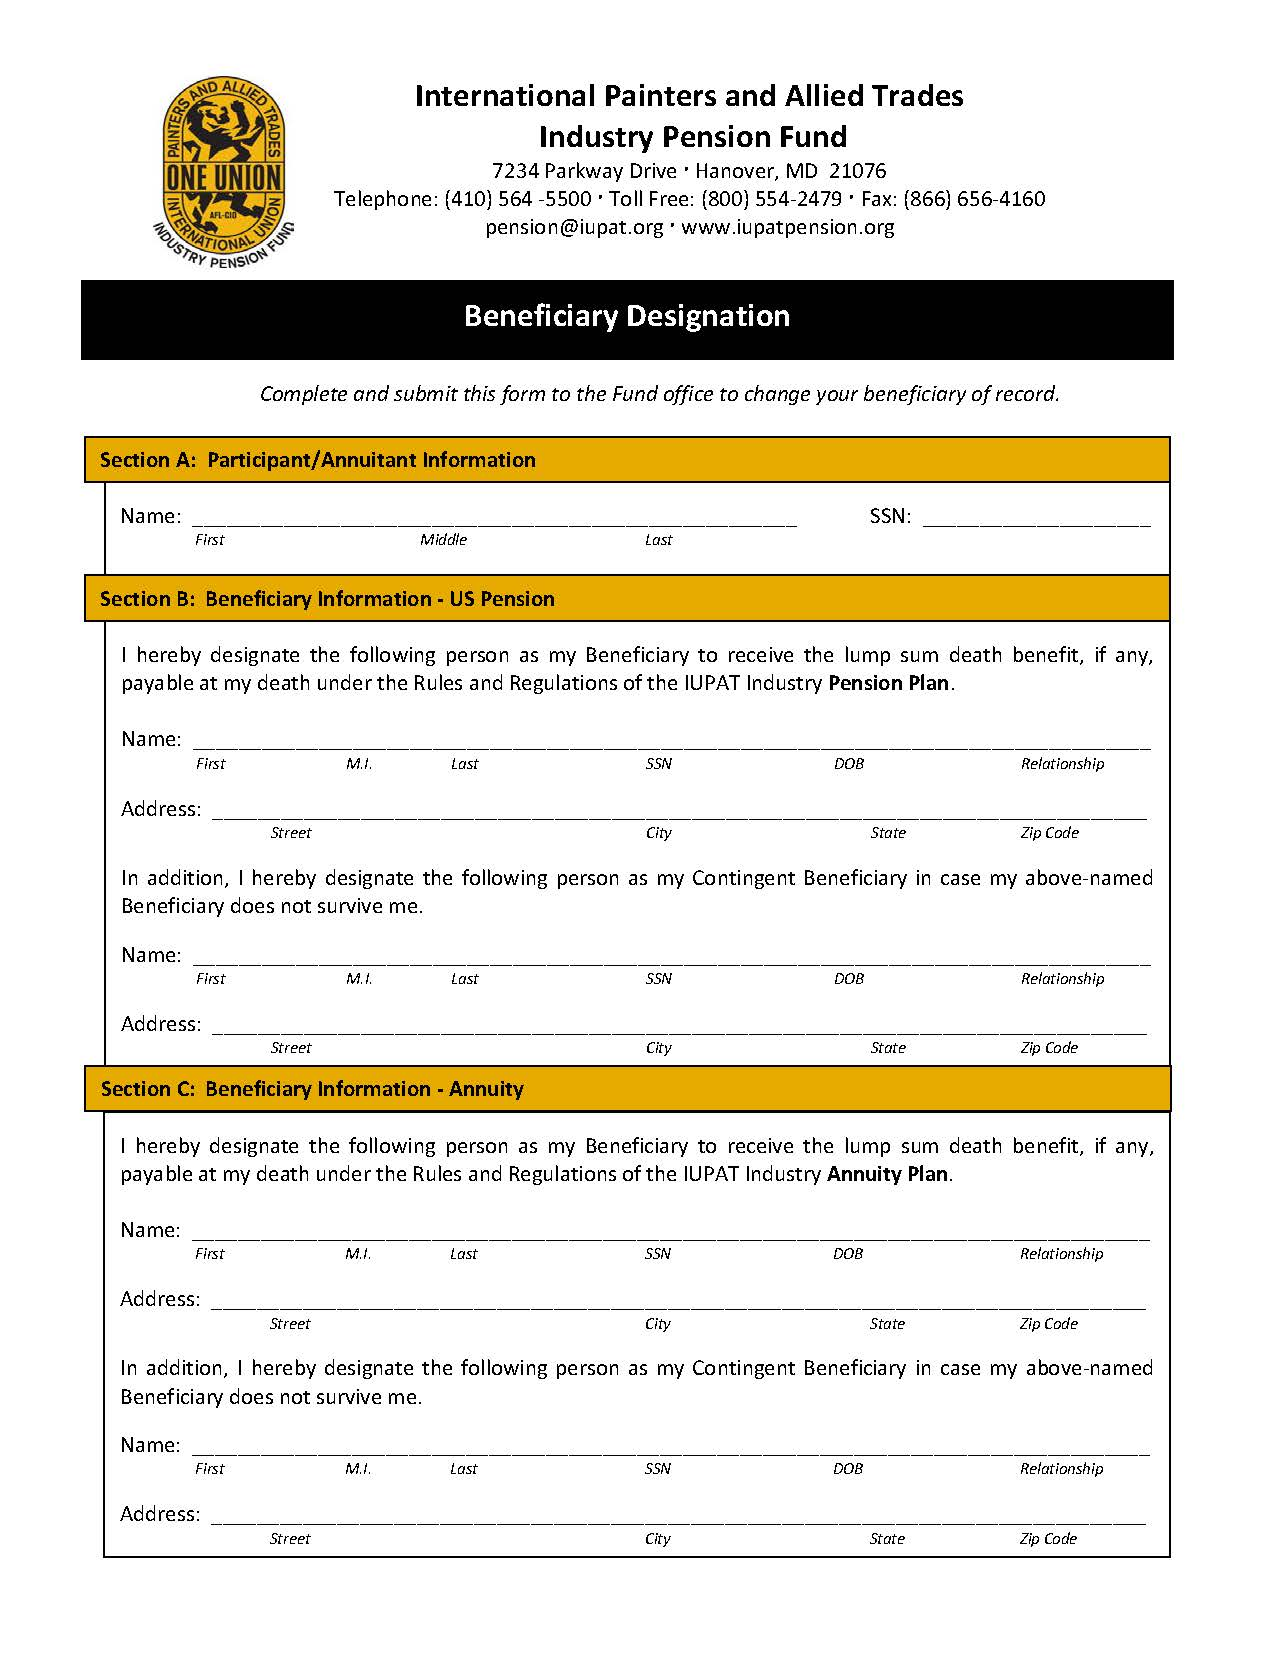 Beneficiary Designation Form – US